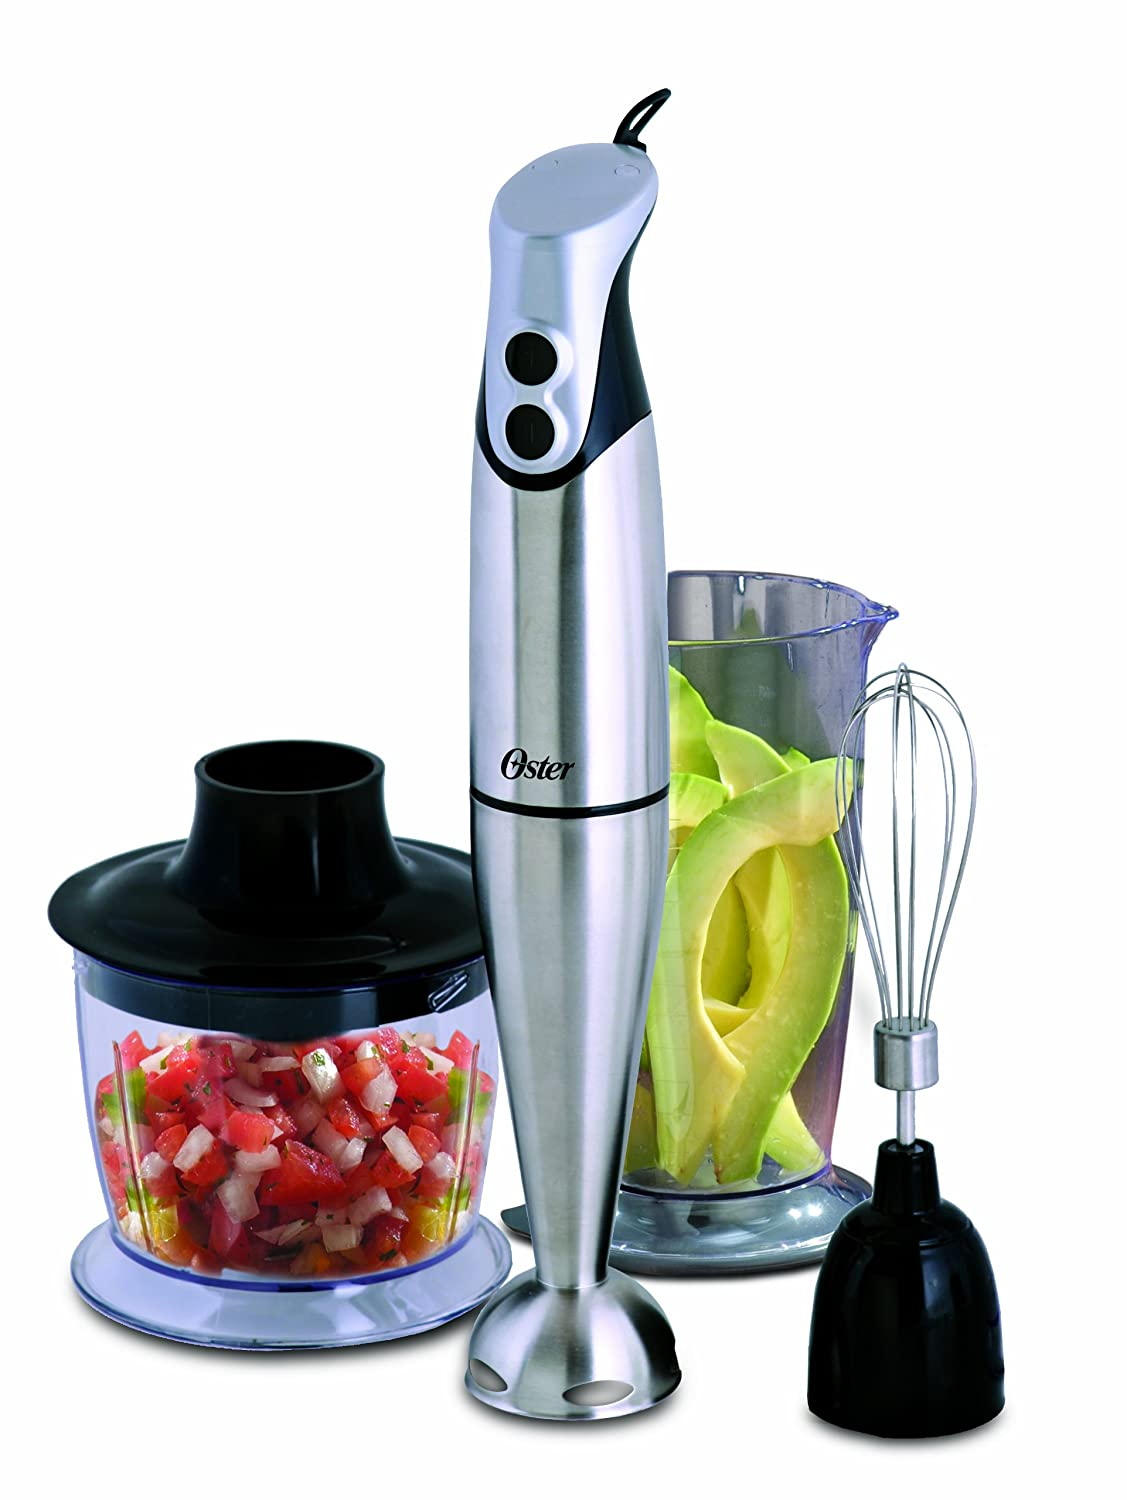 Oster Hand Blender with Accessories, Stainless Steel FPSTHBSSA2-033